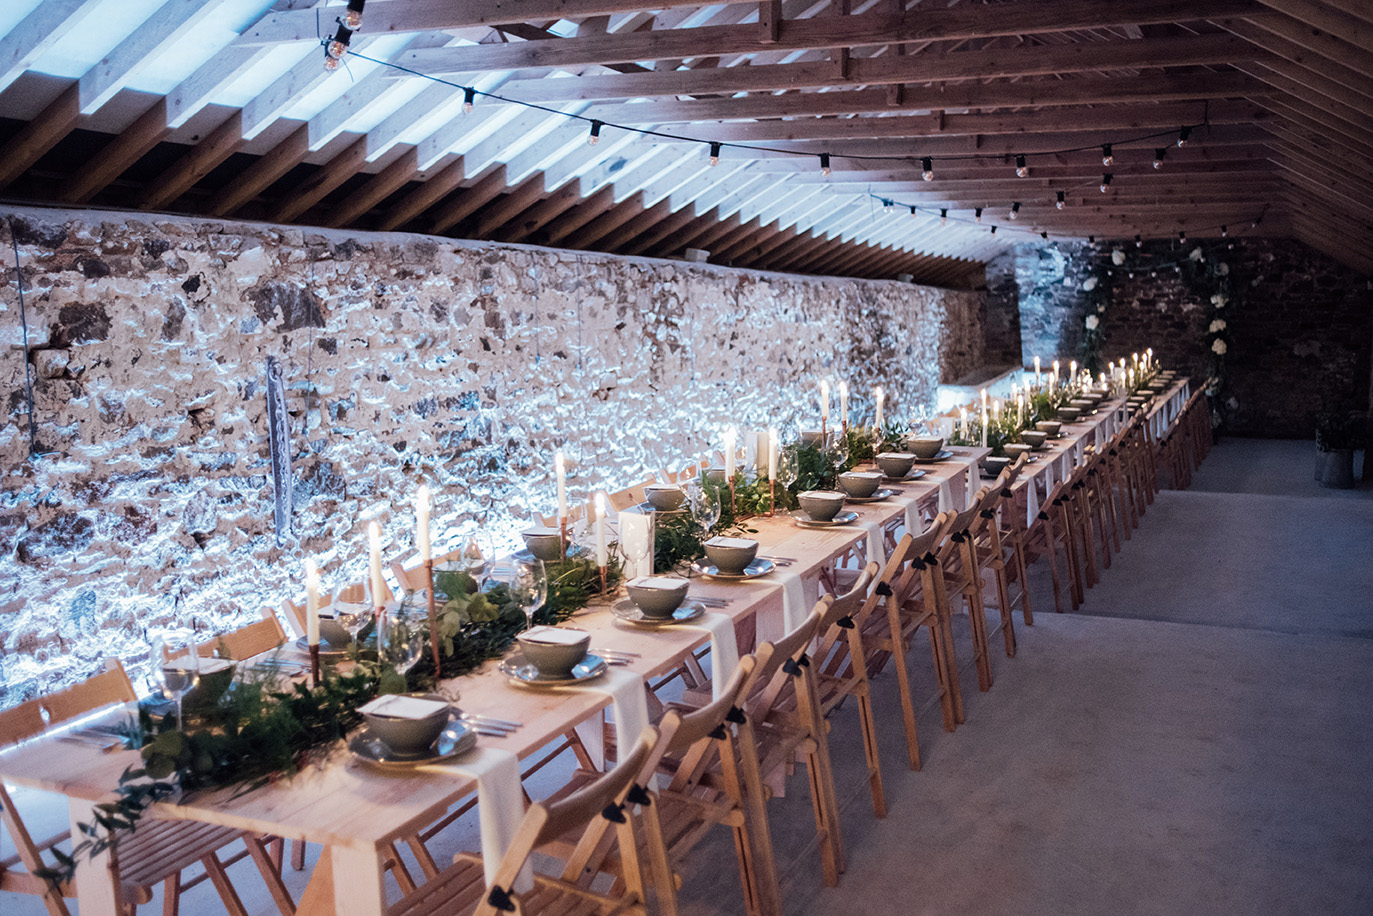 The inside of the Cowyard Barn rustic party and reception space set for a night time dinner at Pengenna Manor Cornwall wedding venue.jpg